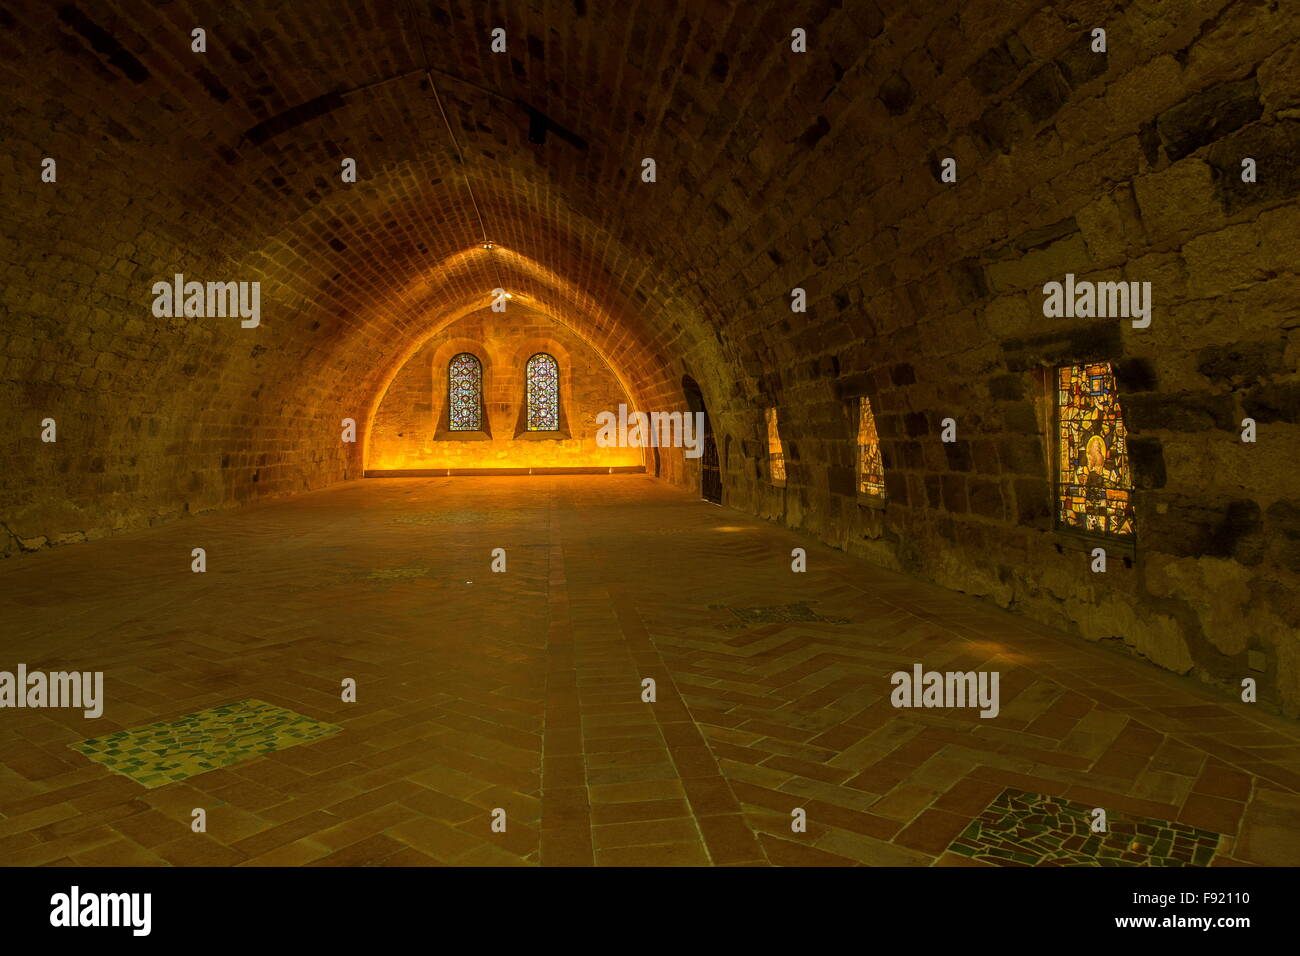 Inside the lay dormitory, L'Abbaye Sainte-Marie de Fontfroide, or Fontfroide Abbey, near Narbonne, SW France. - Stock Image